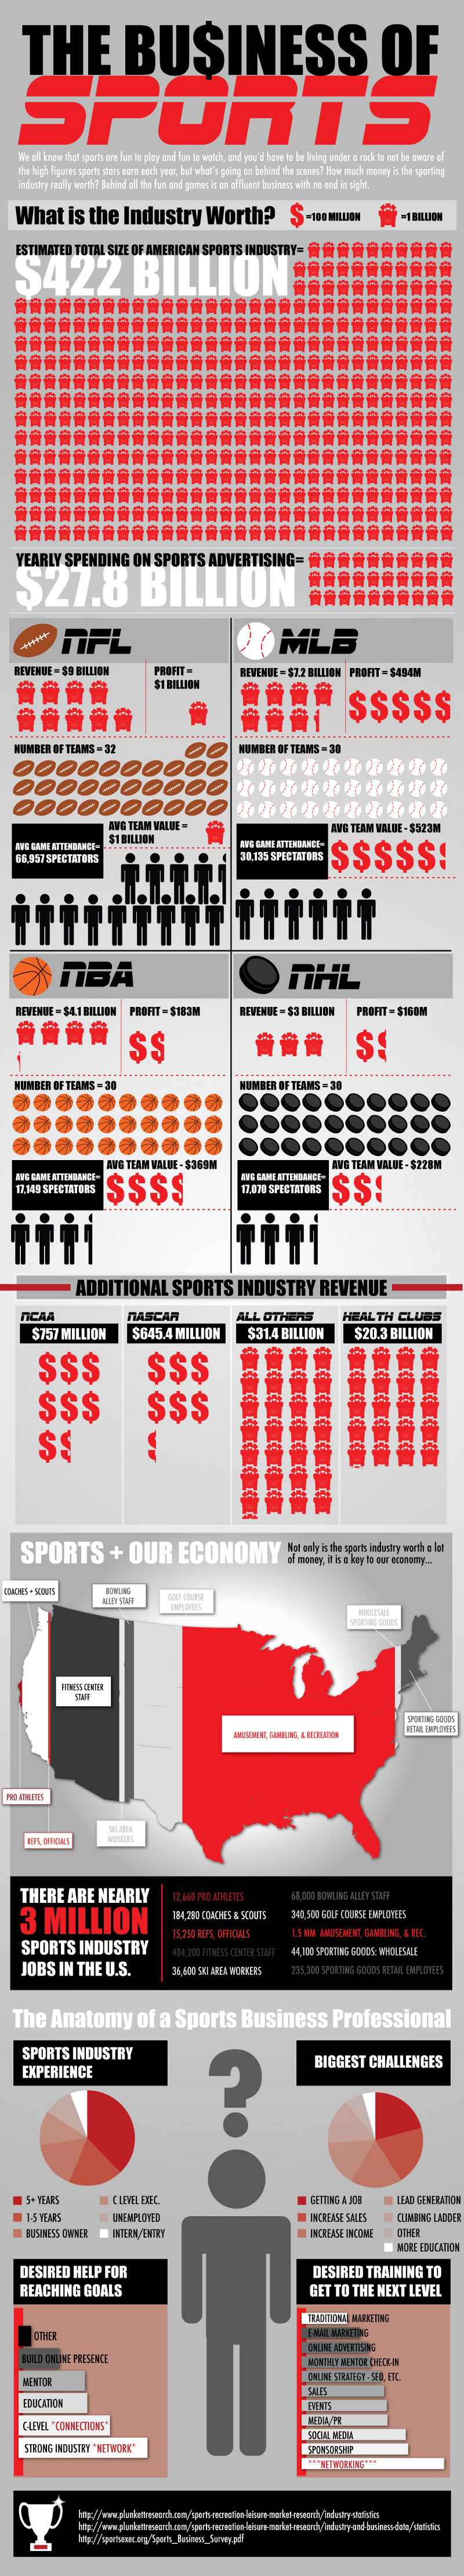 Sports Industry Statistics and Total Value